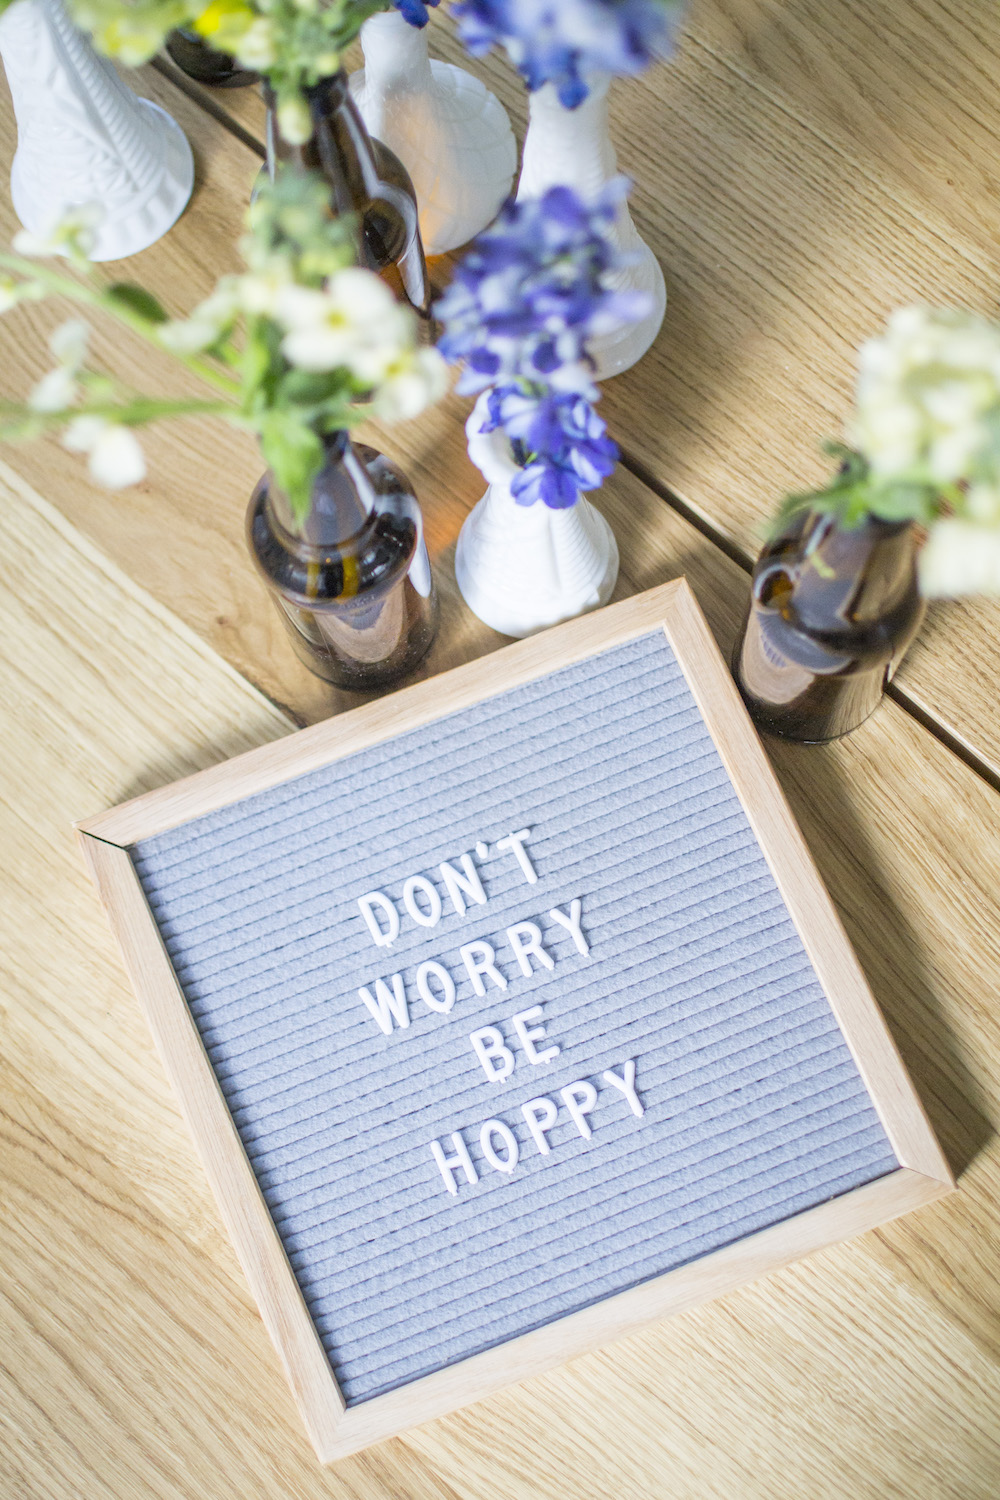 don't worry be hoppy letterboard.jpg